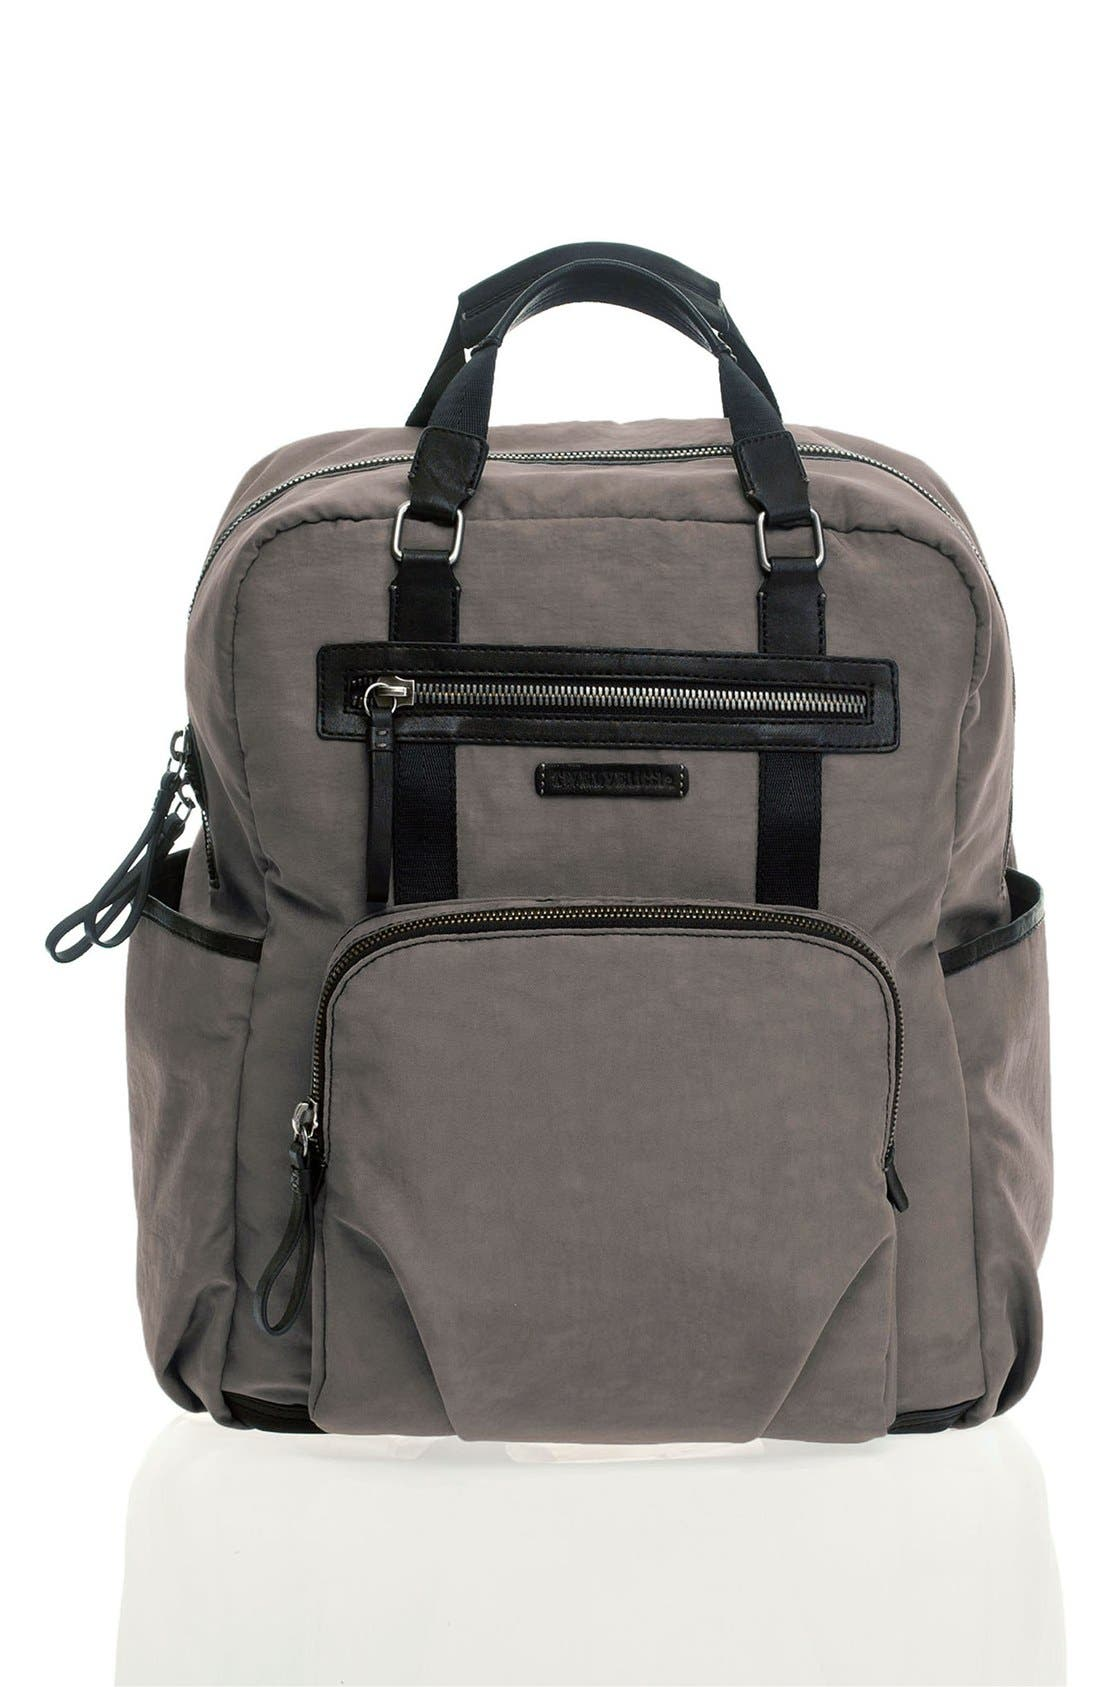 'Courage' Unisex Backpack Diaper Bag,                             Main thumbnail 1, color,                             020